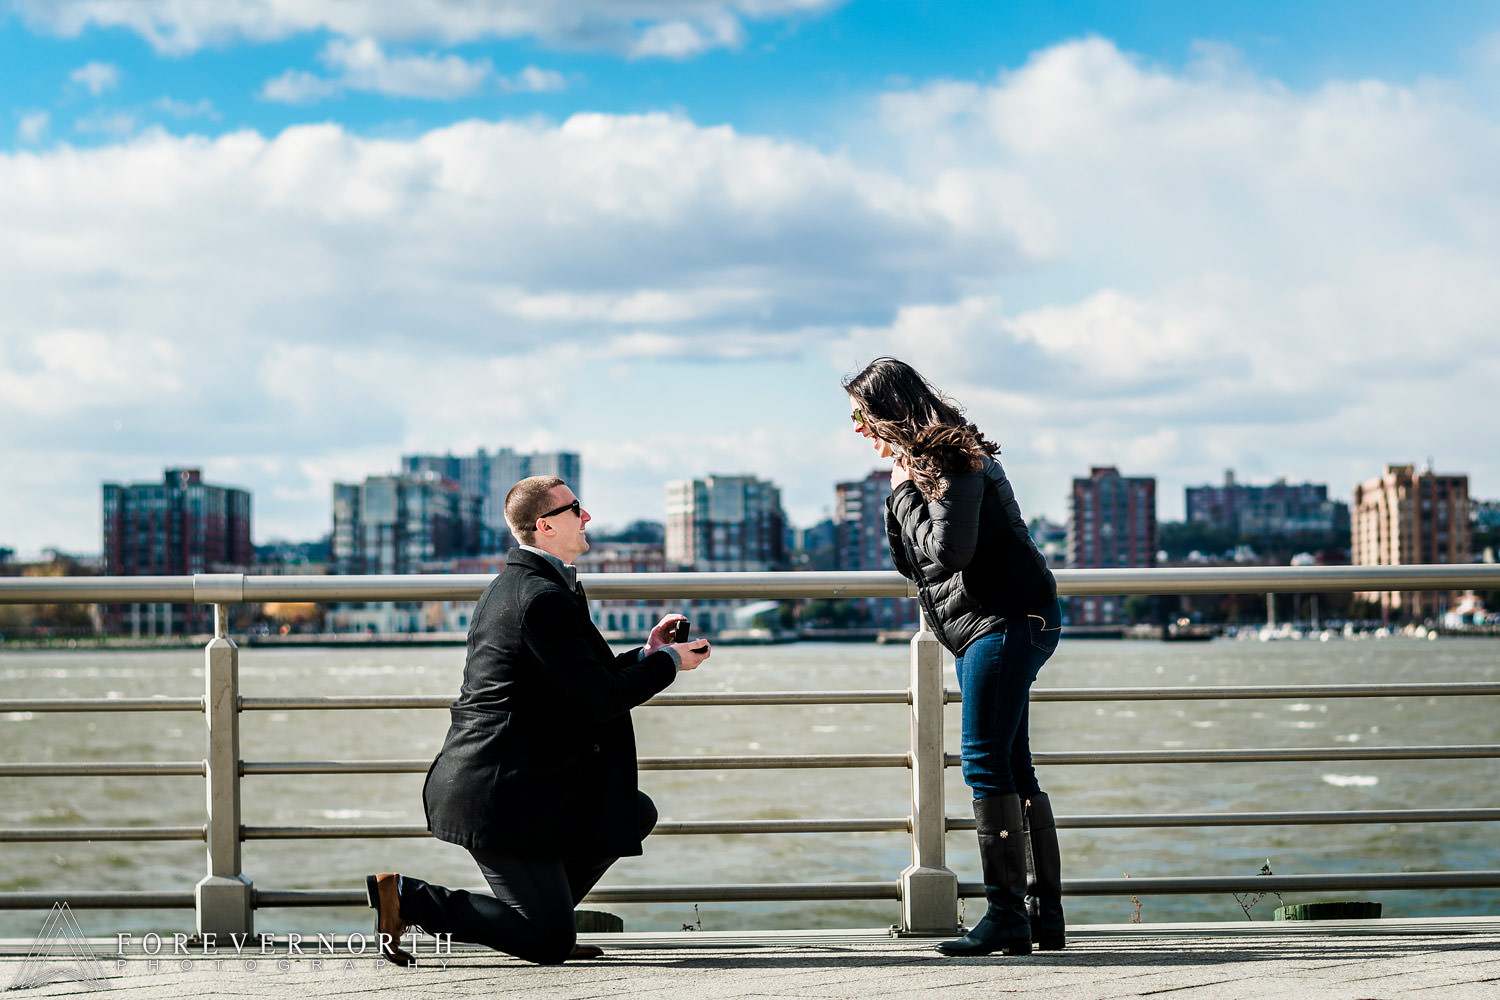 Cainero-Hudson-River-Park-Pier-62-New-York-Proposal-Engagement-Photographer-18.JPG